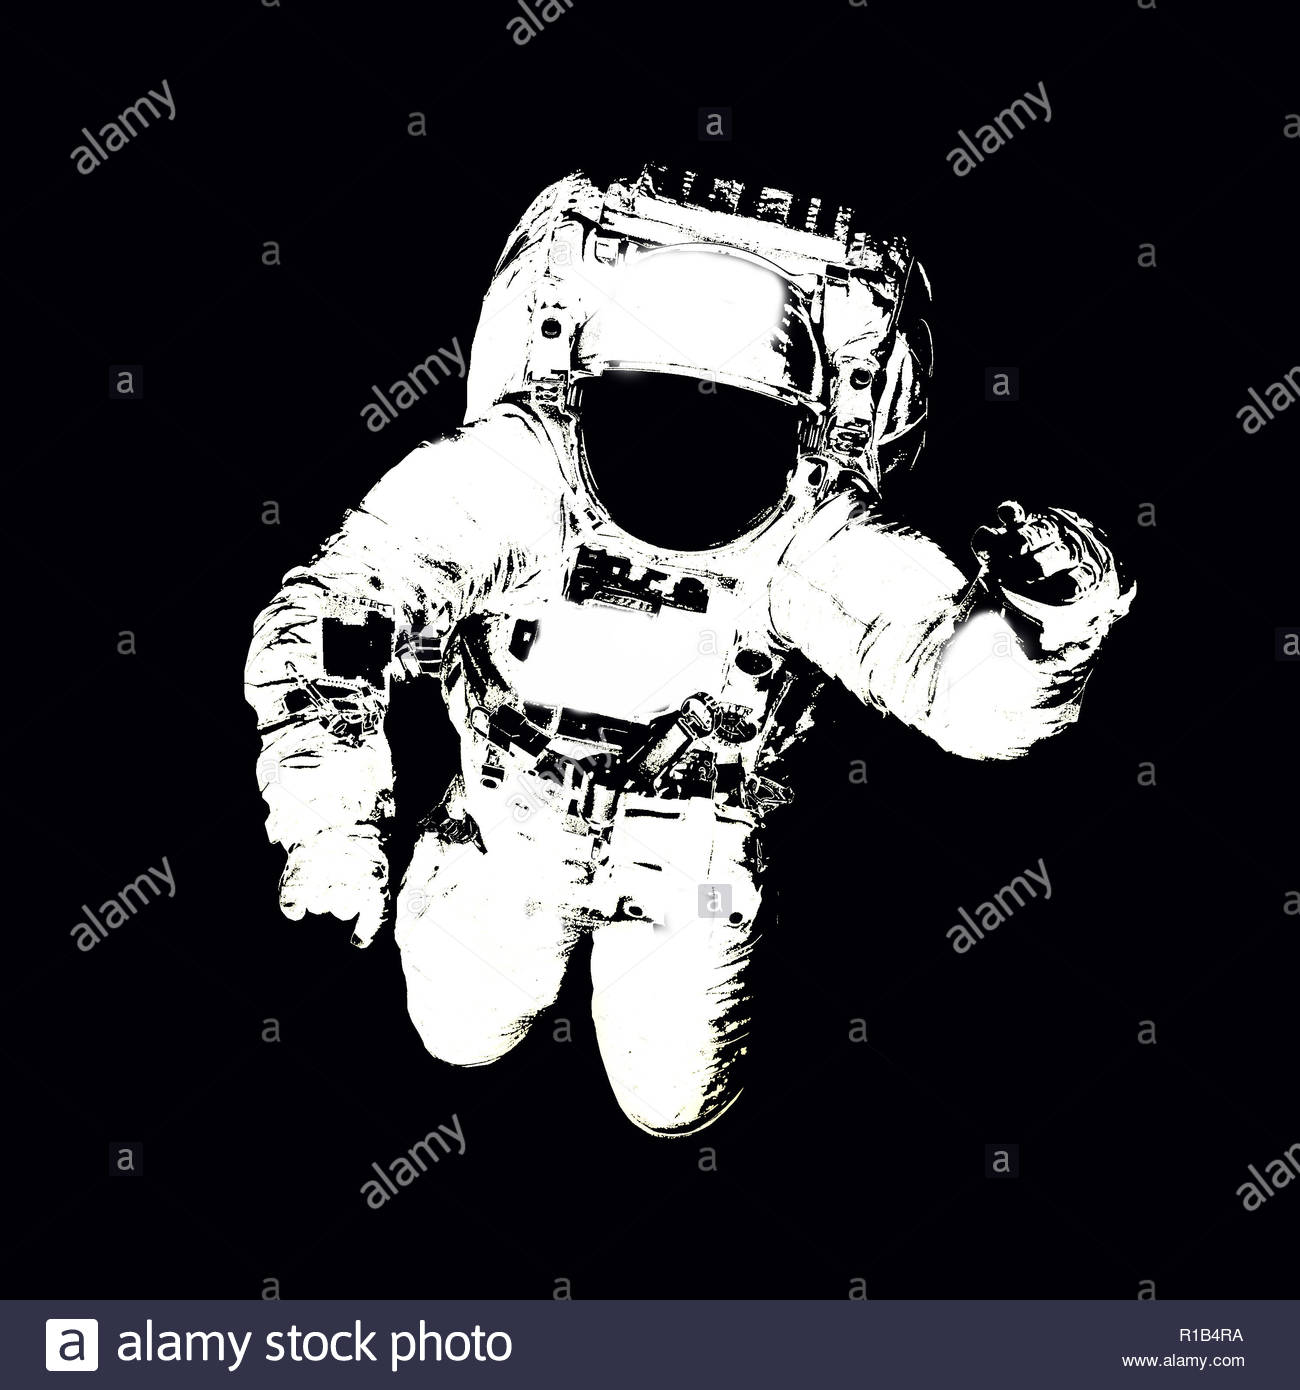 Astronaut in spacesuit close up isolated on black background 1300x1390